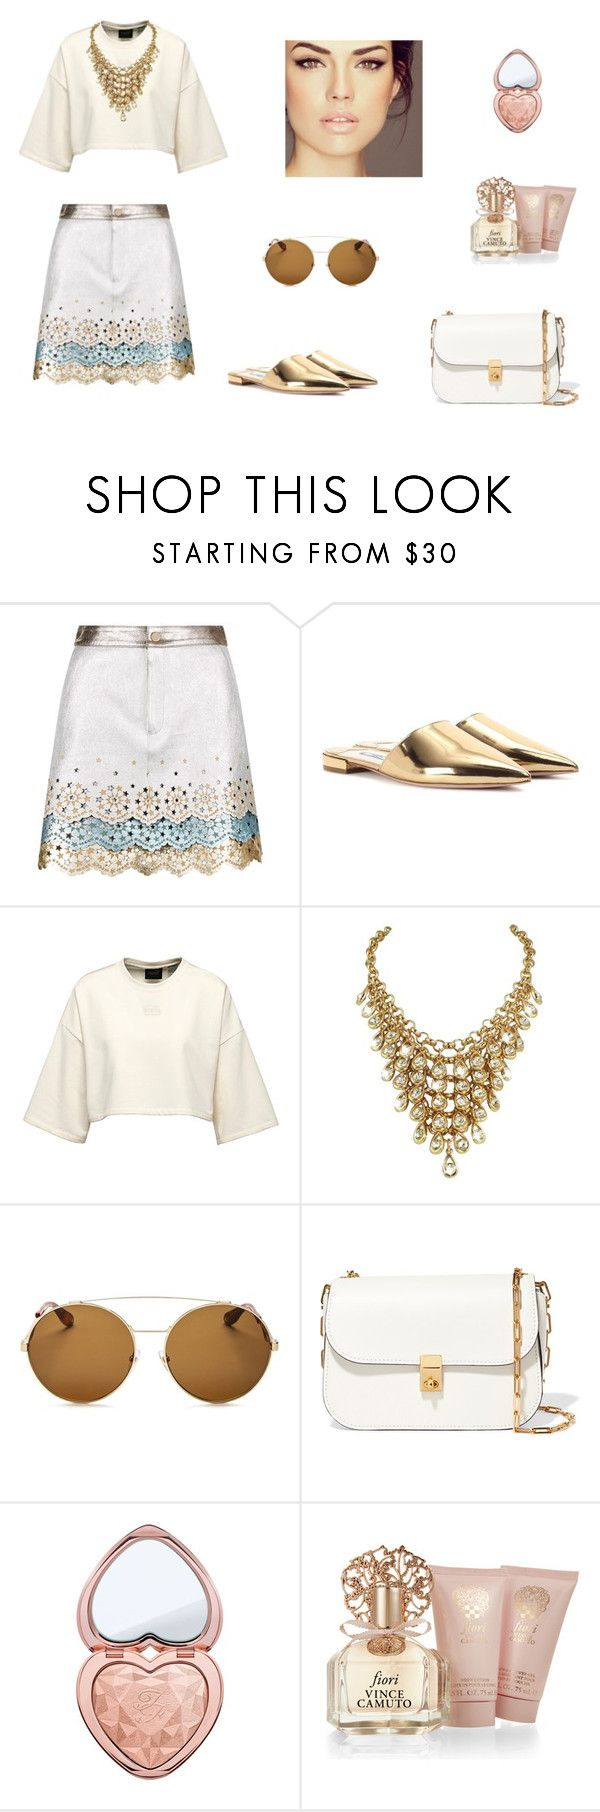 """""""Gold times"""" by ustine on Polyvore featuring moda, Prada, Givenchy, Valentino, Too Faced Cosmetics i Vince Camuto"""